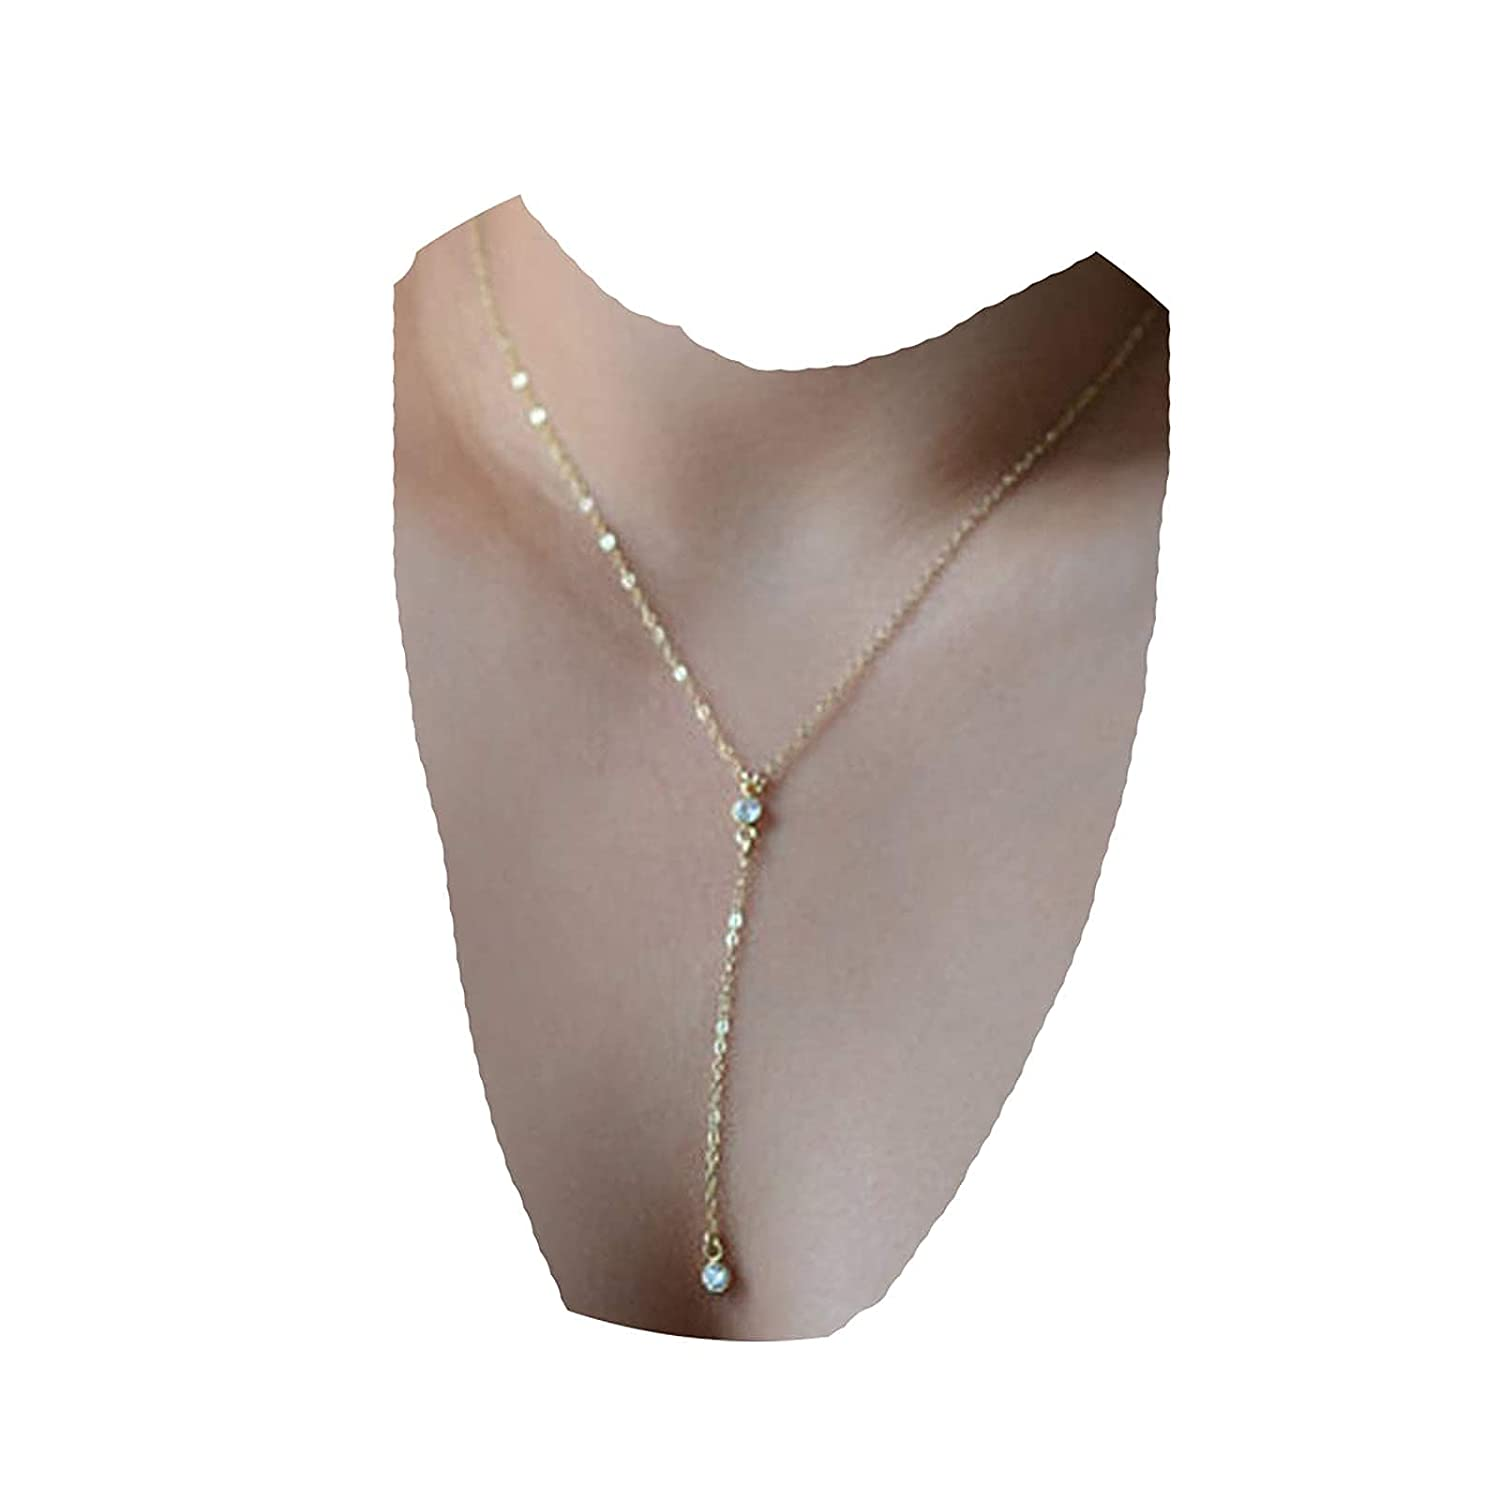 Yheakne Boho Layered Crystal Necklace Choker Gold Long Y Necklace Chain Minimalist Cz Lariat Necklace Simple Y Lariat Necklace Jewelry for Women and Girls (Gold)